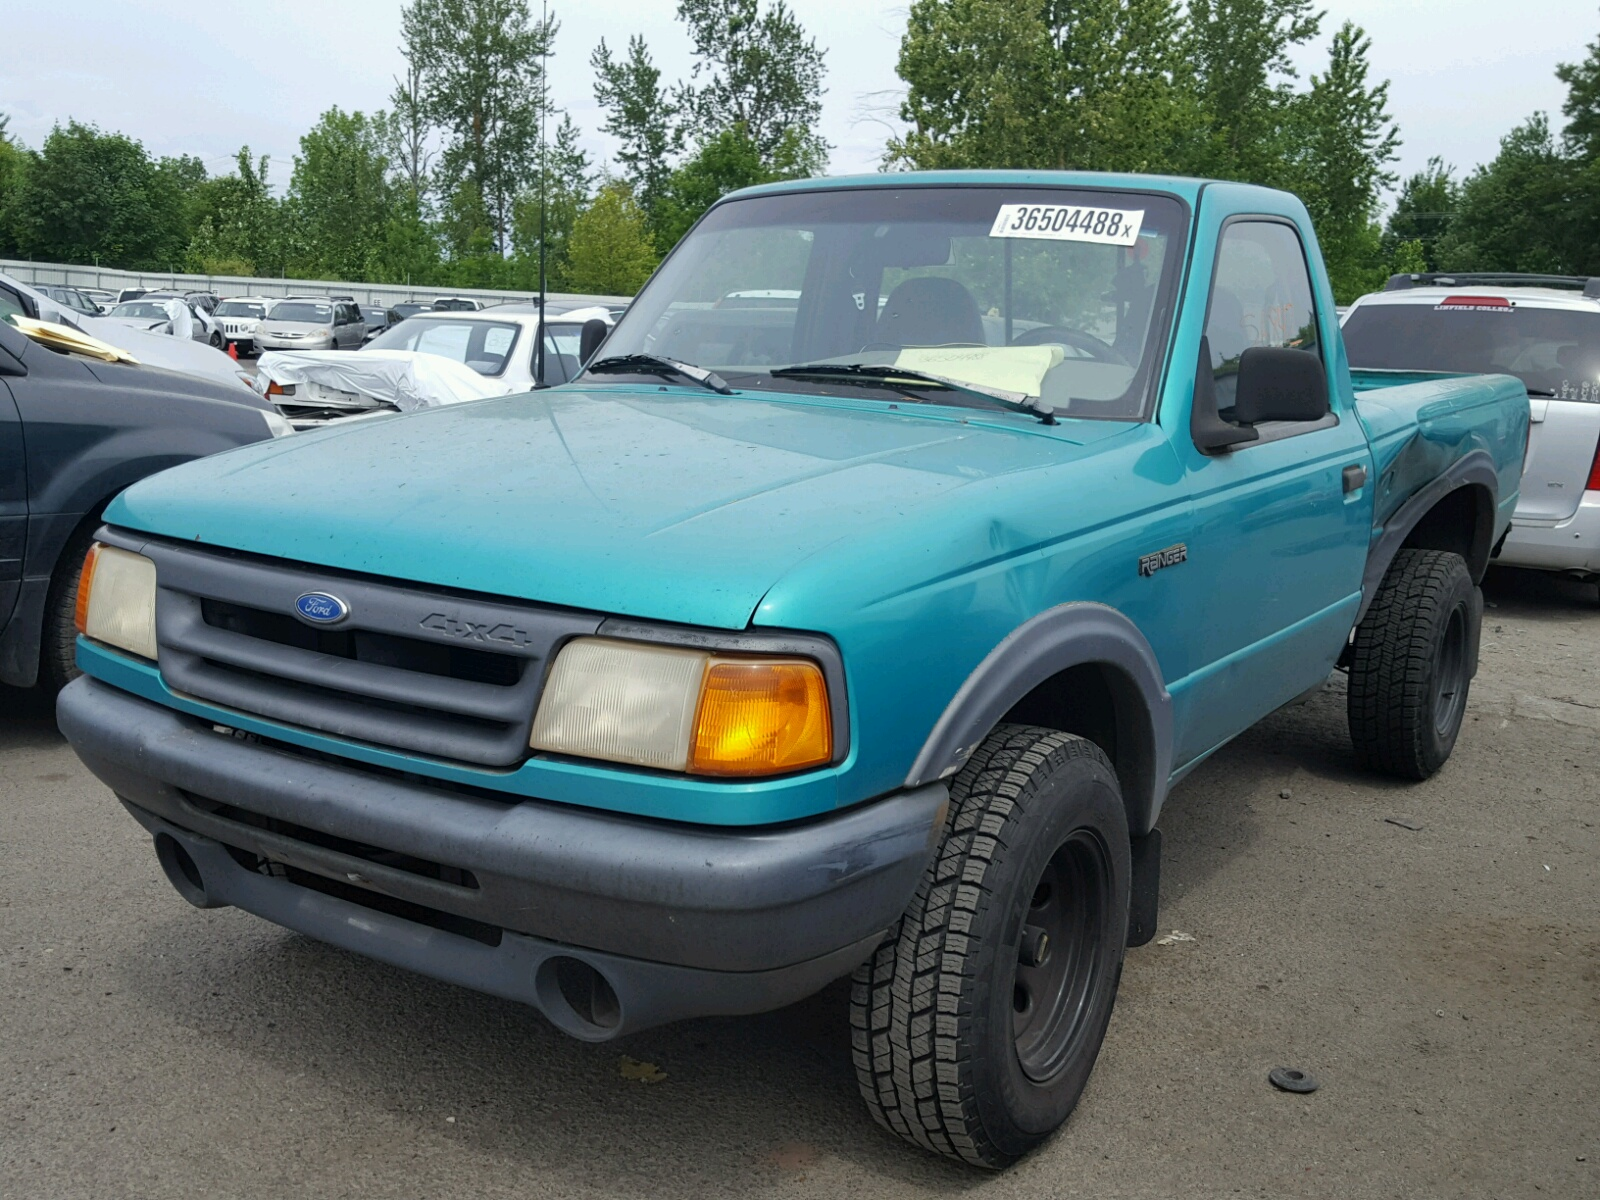 Auto Auction Ended On Vin 1ftcr11x7ppa31834 1993 Ford Ranger In Or Power Window Motor For 40l Right View